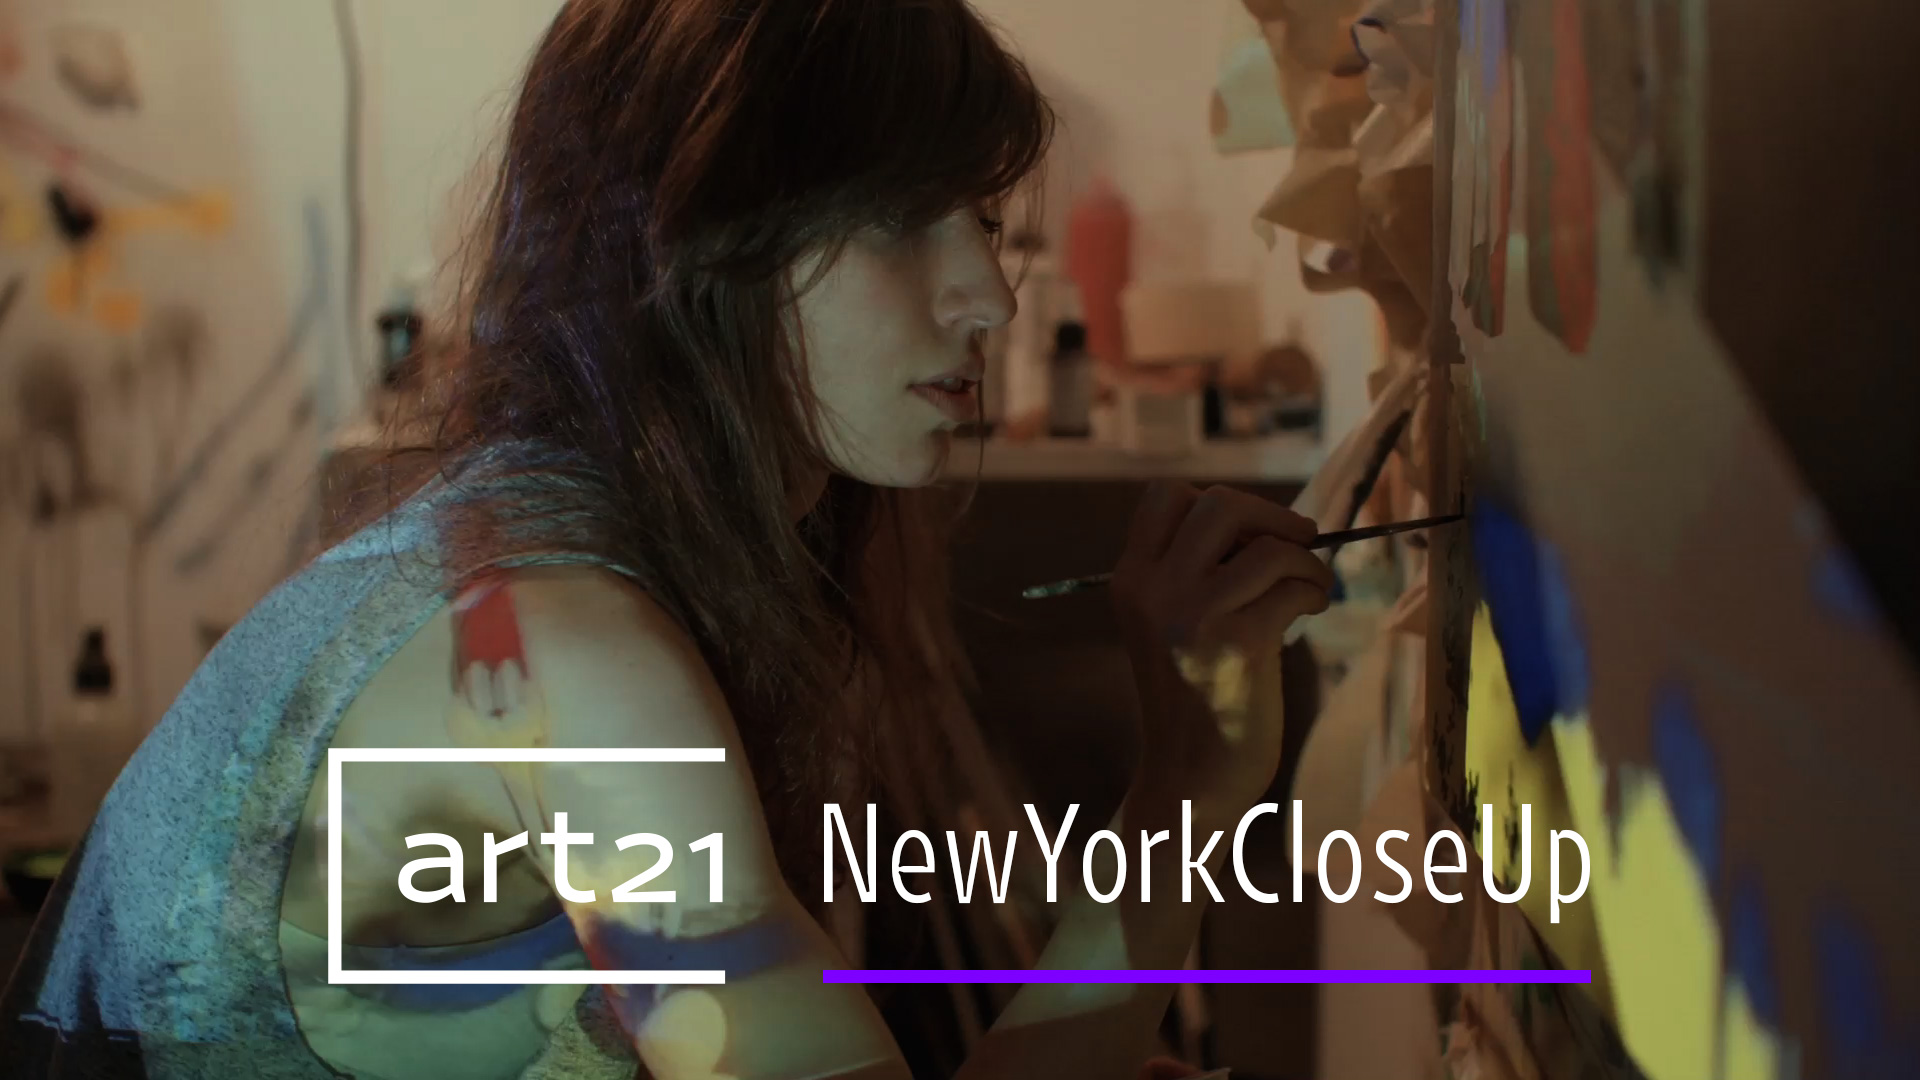 New York Close Up (Art21.org)